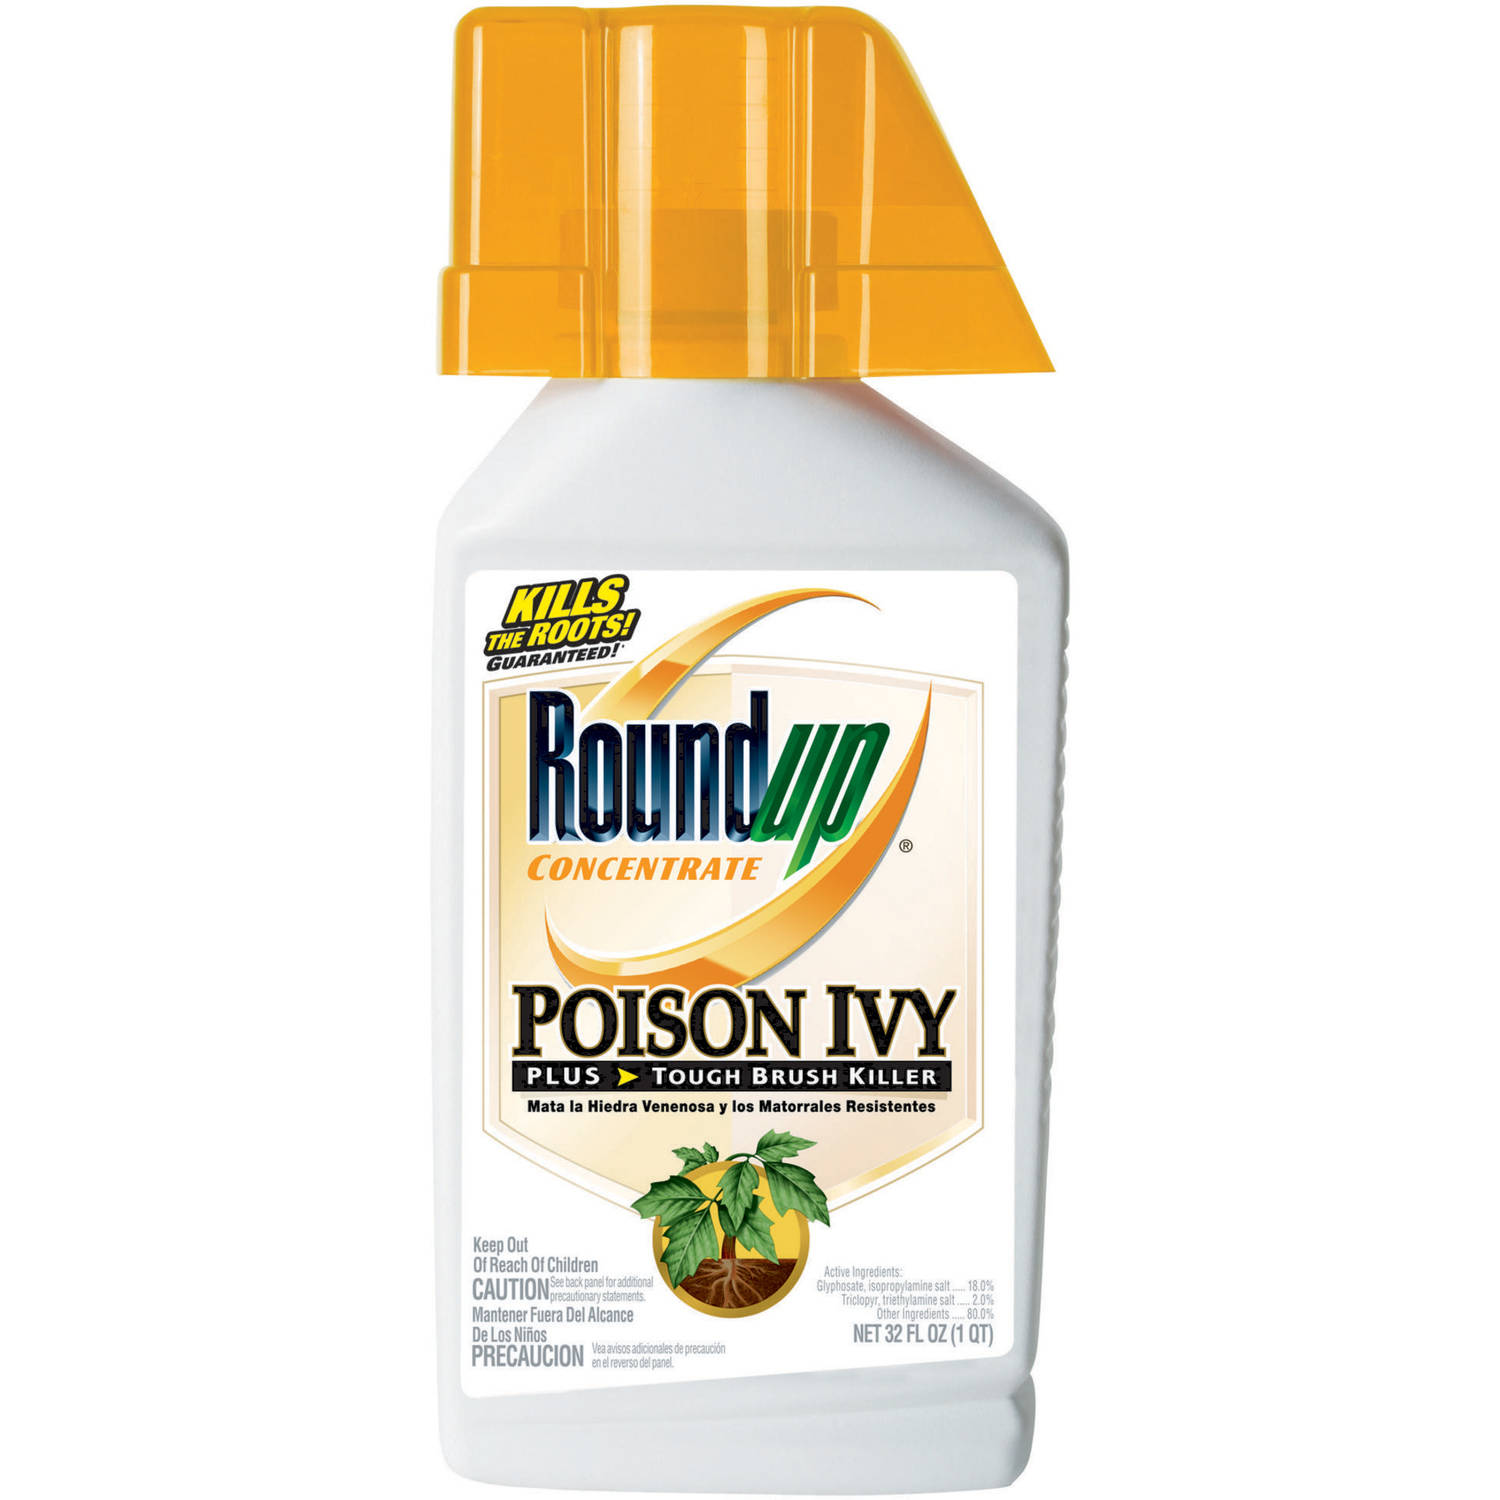 Roundup Concentrate Poison Ivy Plus Tough Brush Killer 32 Oz